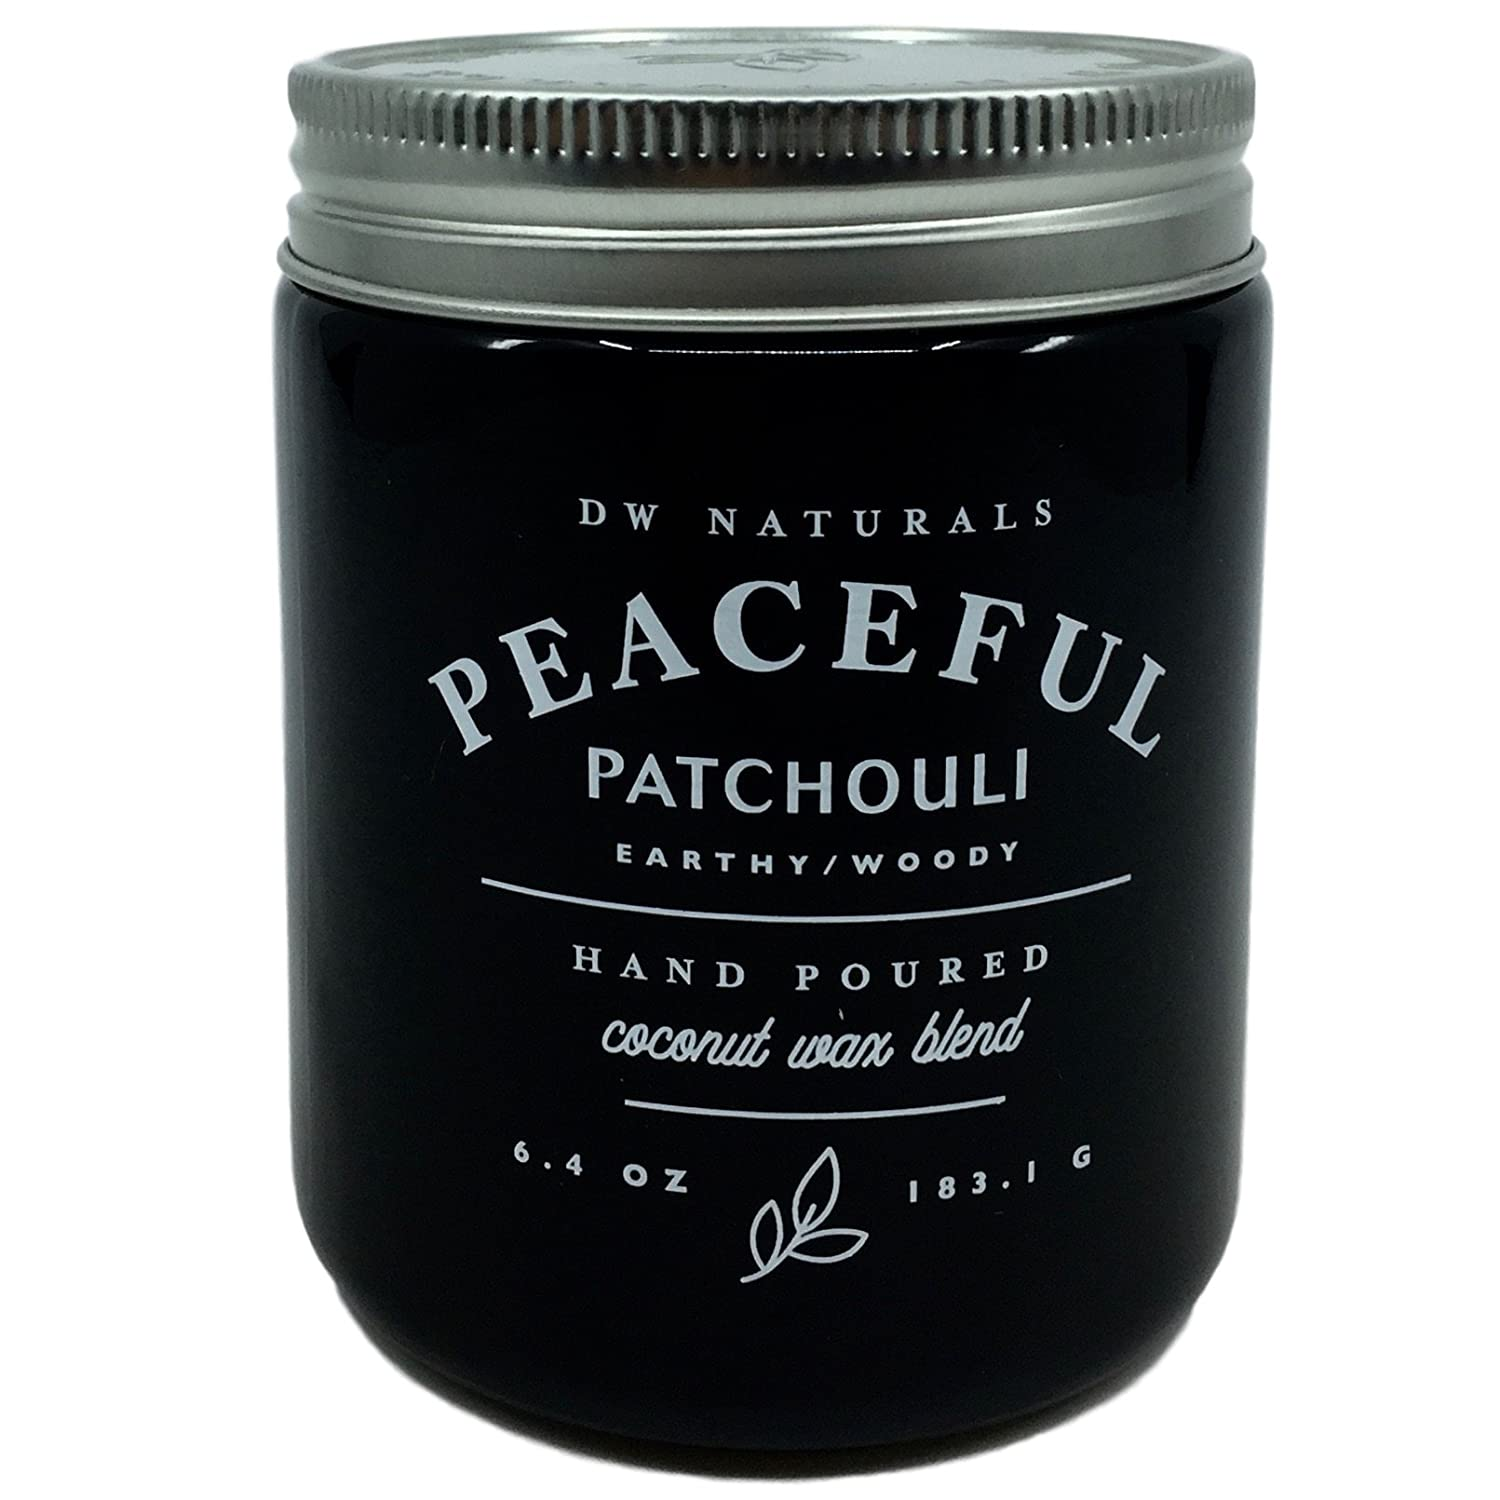 (訳ありセール 格安) DW Naturals Peaceful DW Patchouli Scented B078WN9DZ6 Candle Candle Coconutワックスブレンド B078WN9DZ6, 飛騨高山の甚五郎商店:2bb62dc7 --- egreensolutions.ca